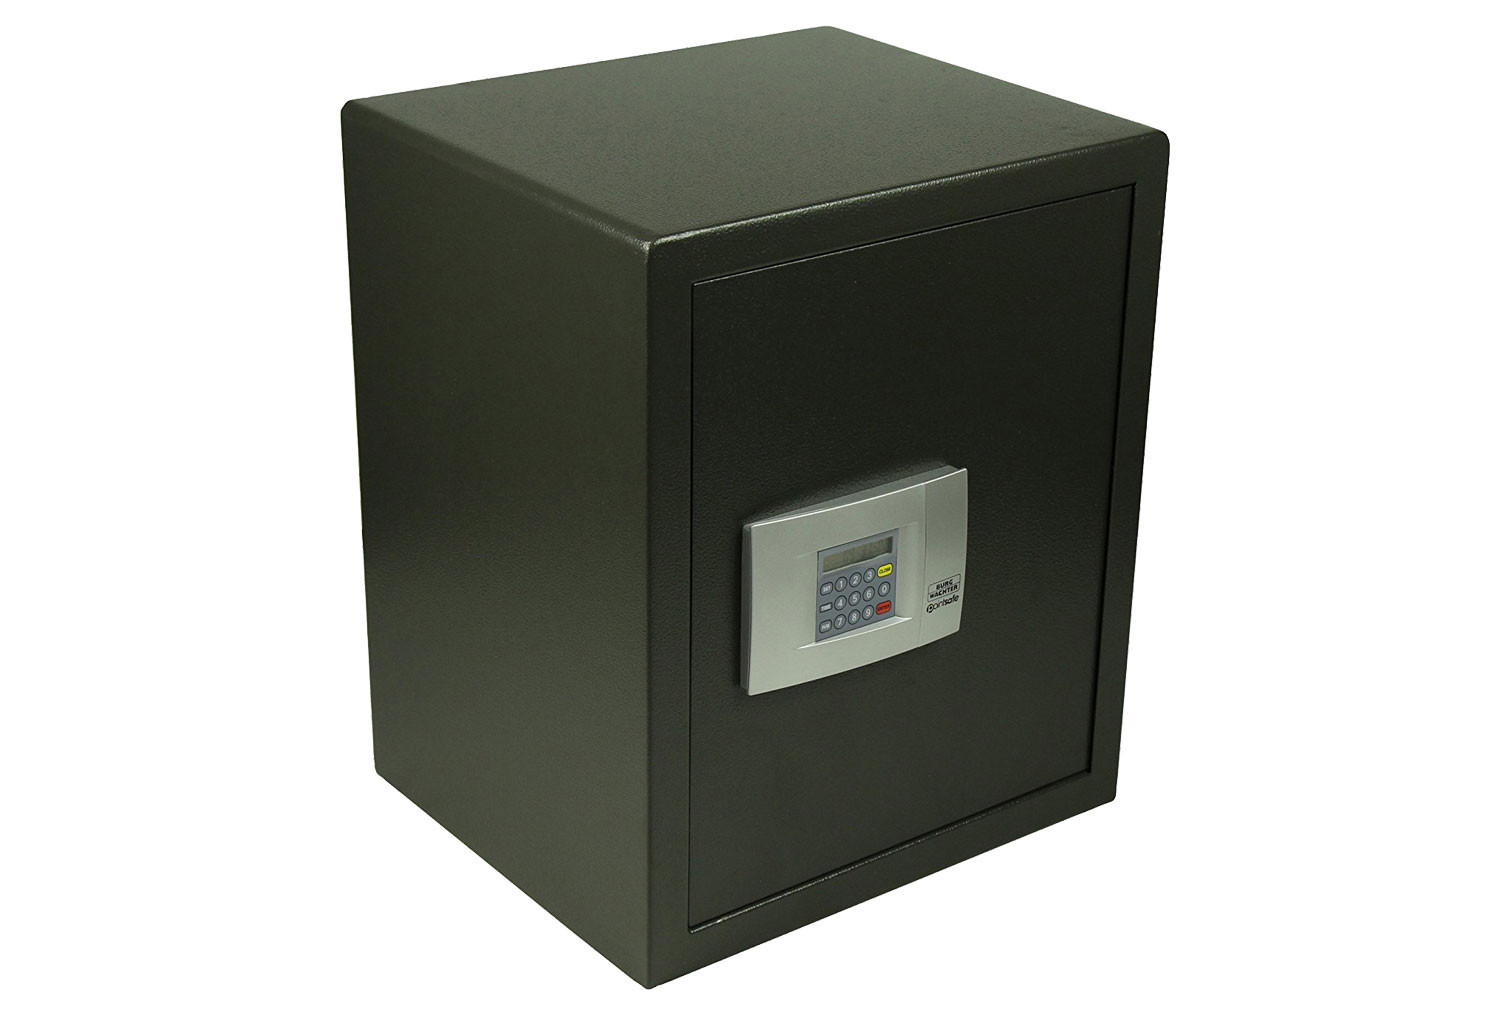 Burg Wachter Pointsafe P 4 E Home Safe With Electronic Lock (58ltrs)